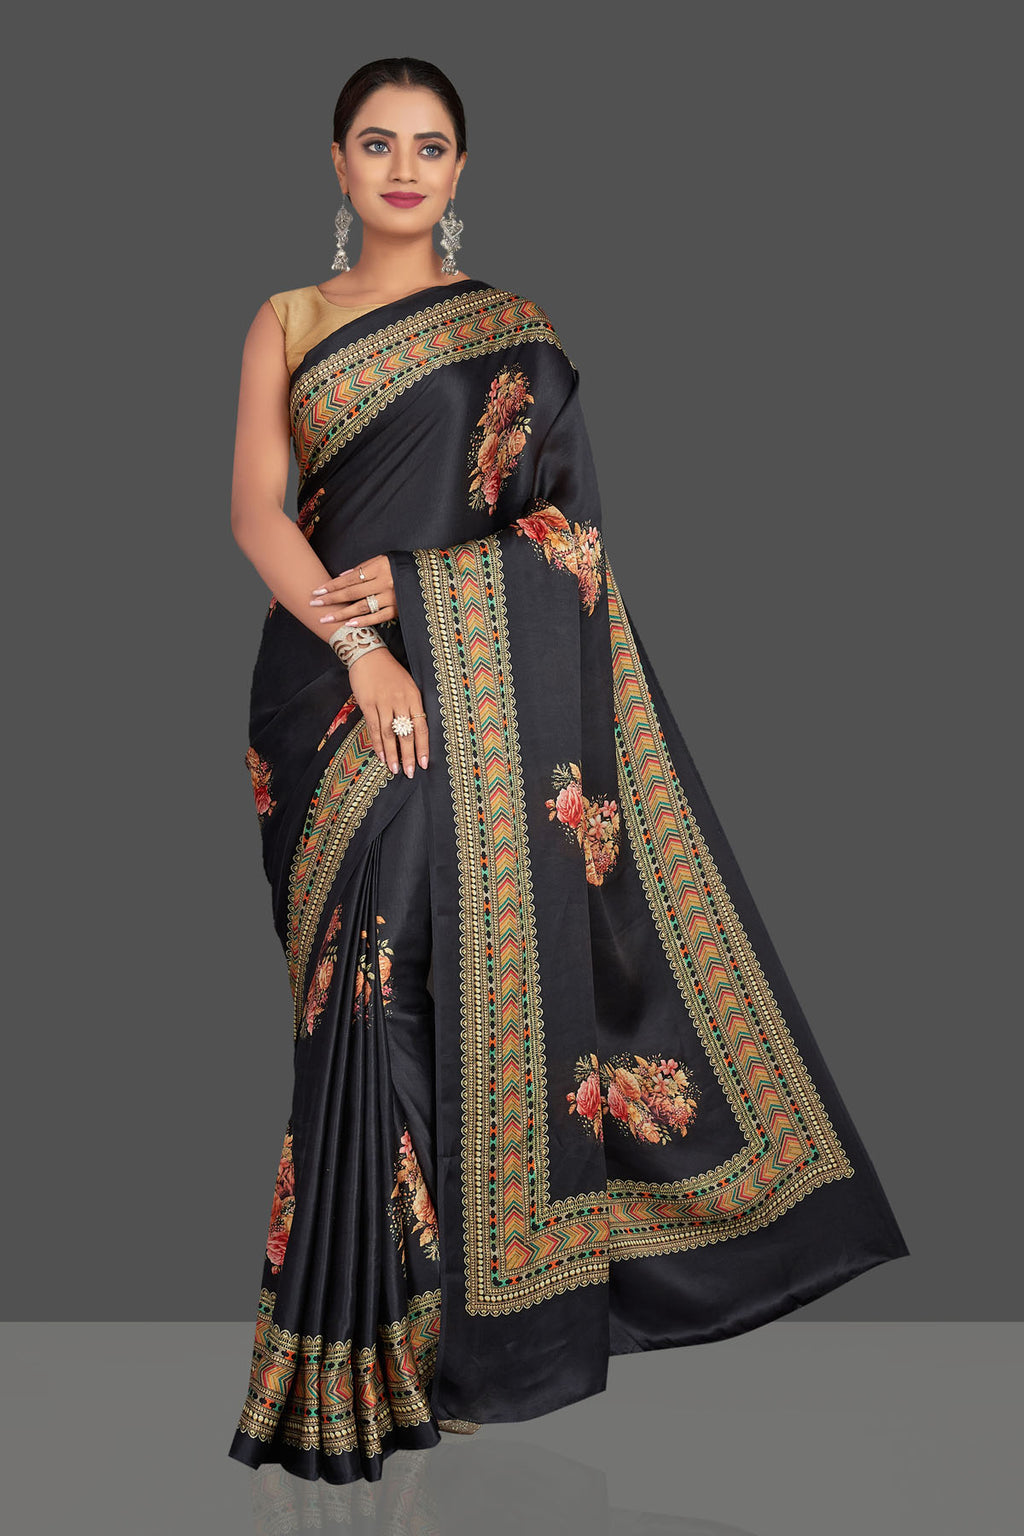 Shop beautiful black floral print satin crepe saree online in USA. Shop designer sarees, printed sarees, embroidered saris, crepe sarees in USA from Pure Elegance Indian fashion store in USA.-full view